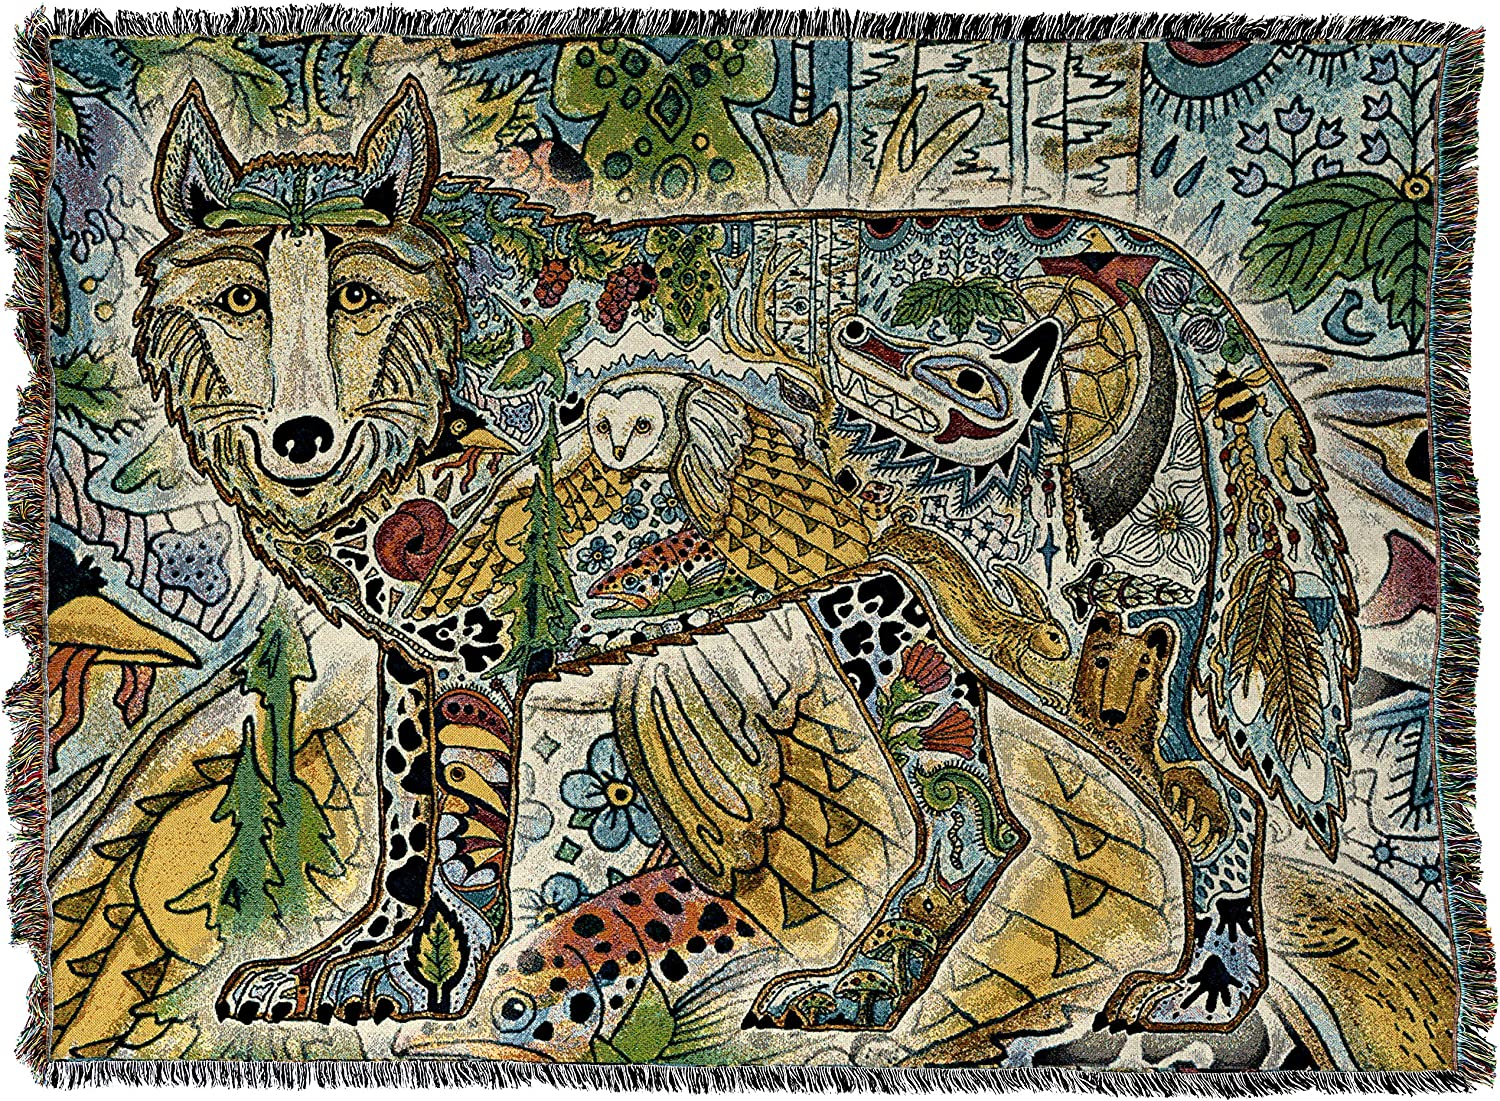 Pure Country Weavers   Wolf Woven Northwest Native Totem Tapestry Throw Blanket with Fringe Cotton USA 72x54